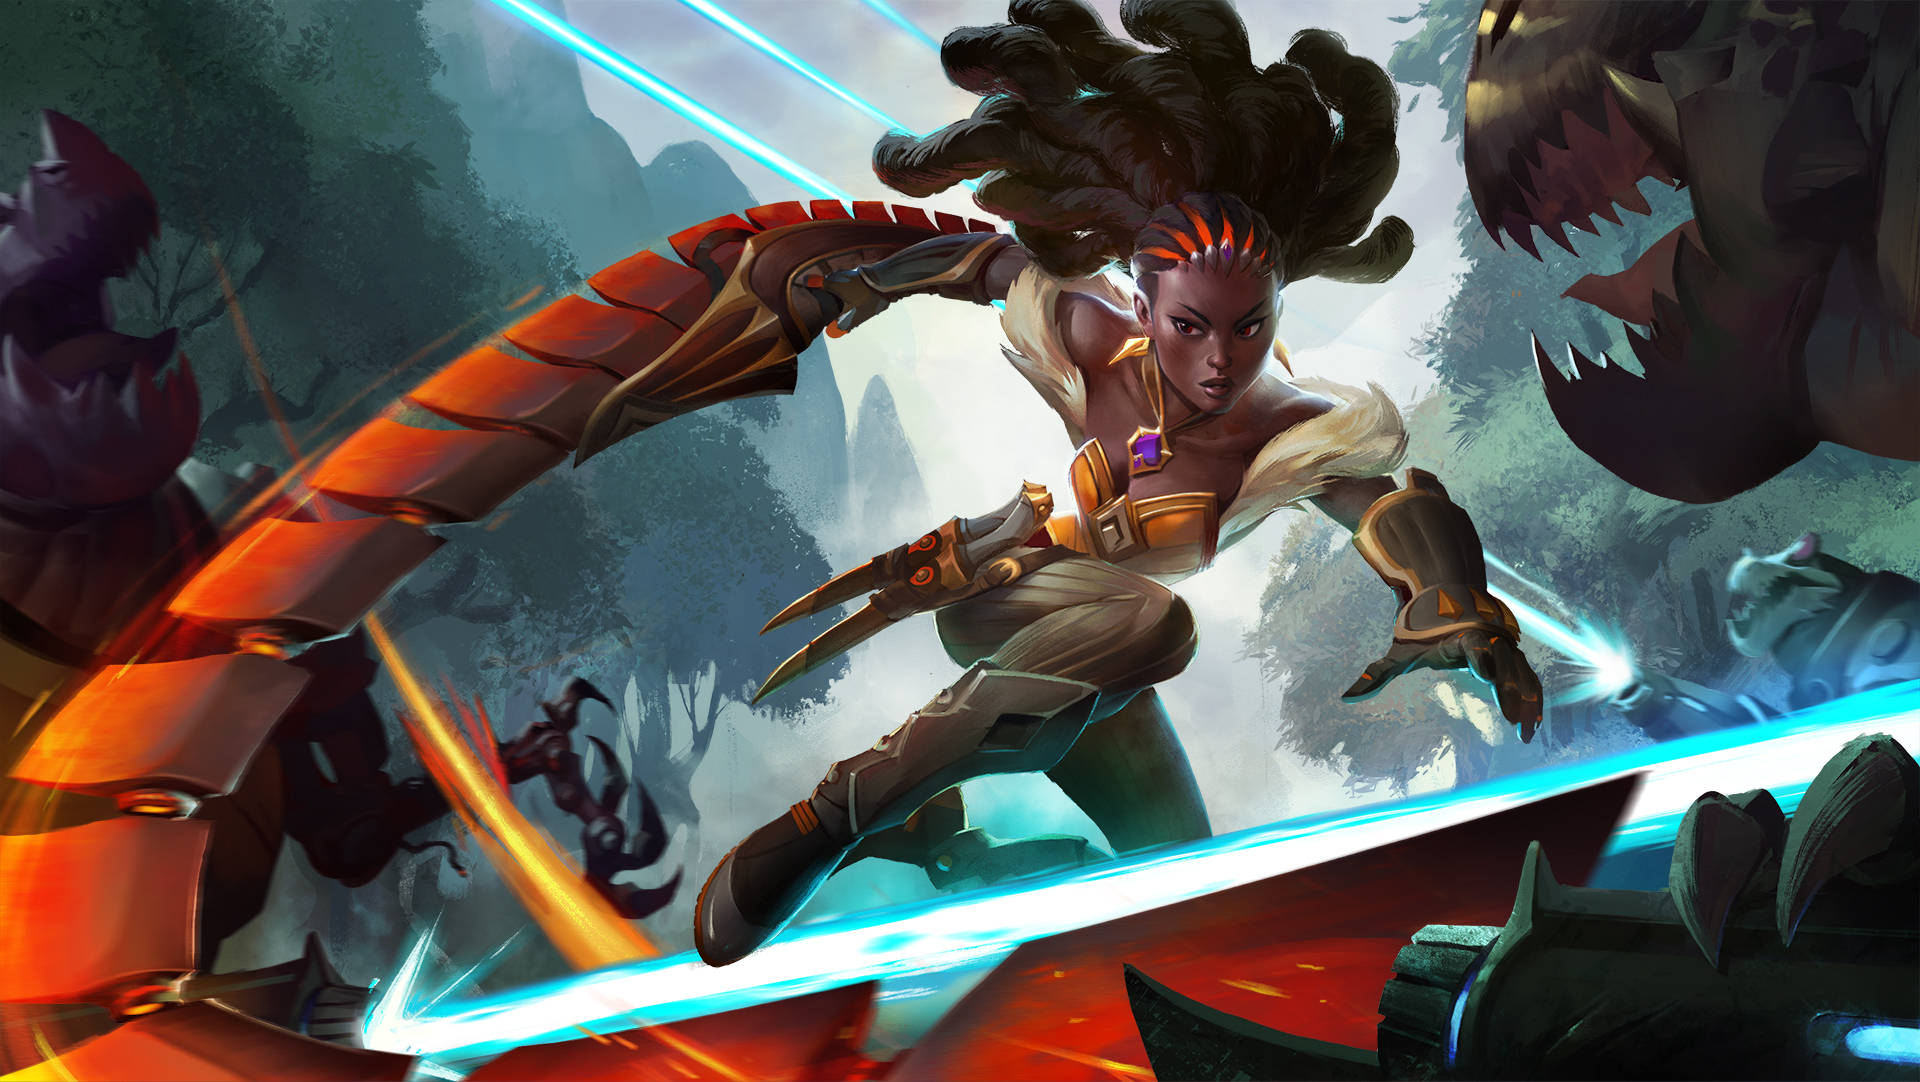 Heroes of the Storm reveals new melee assassin, Qhira | PC Gamer